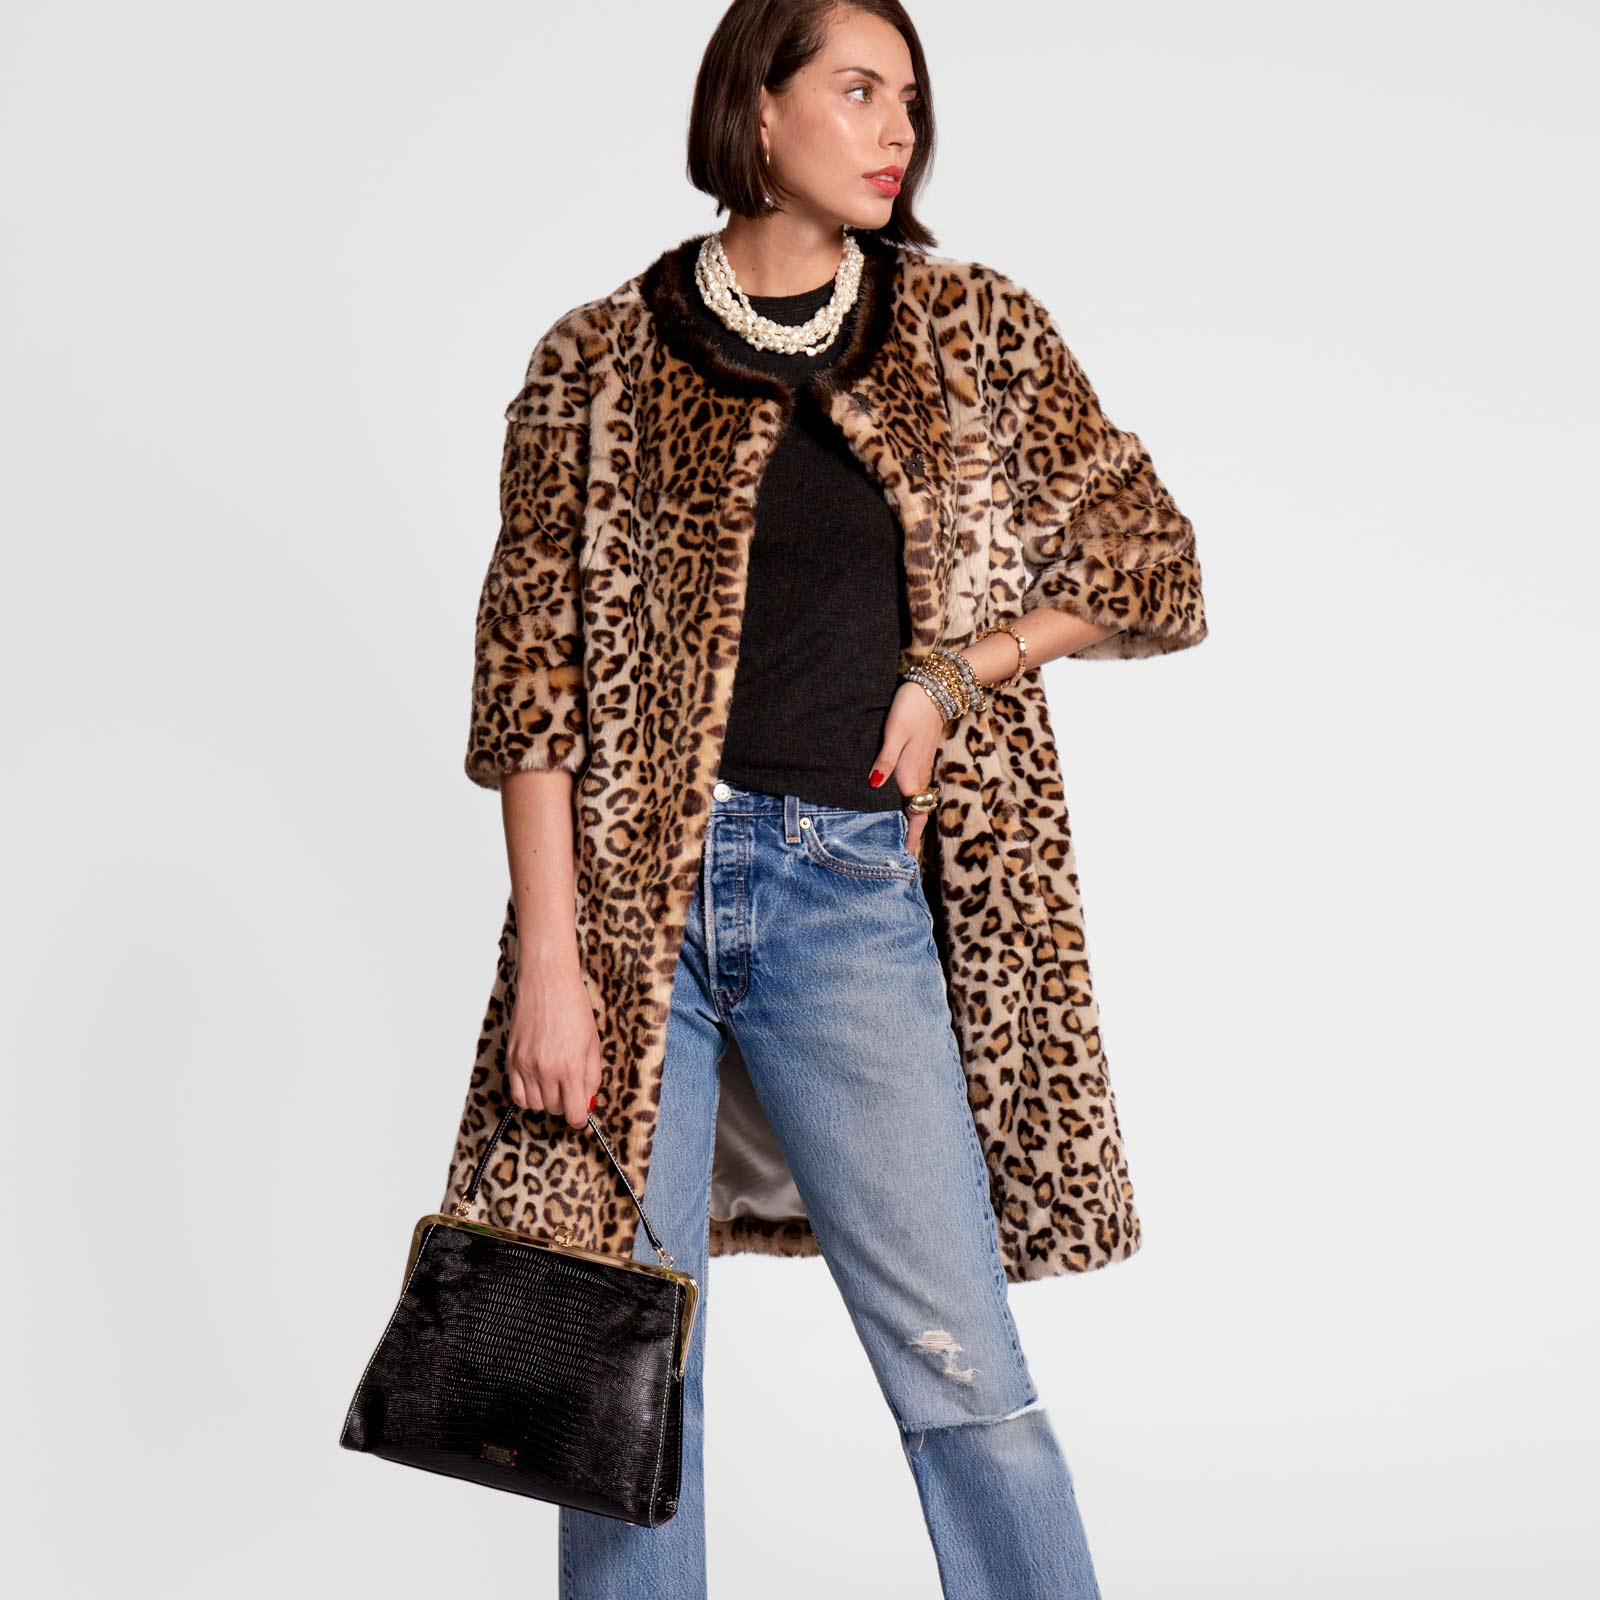 Long Faux Fur Jacket Leopard - Frances Valentine